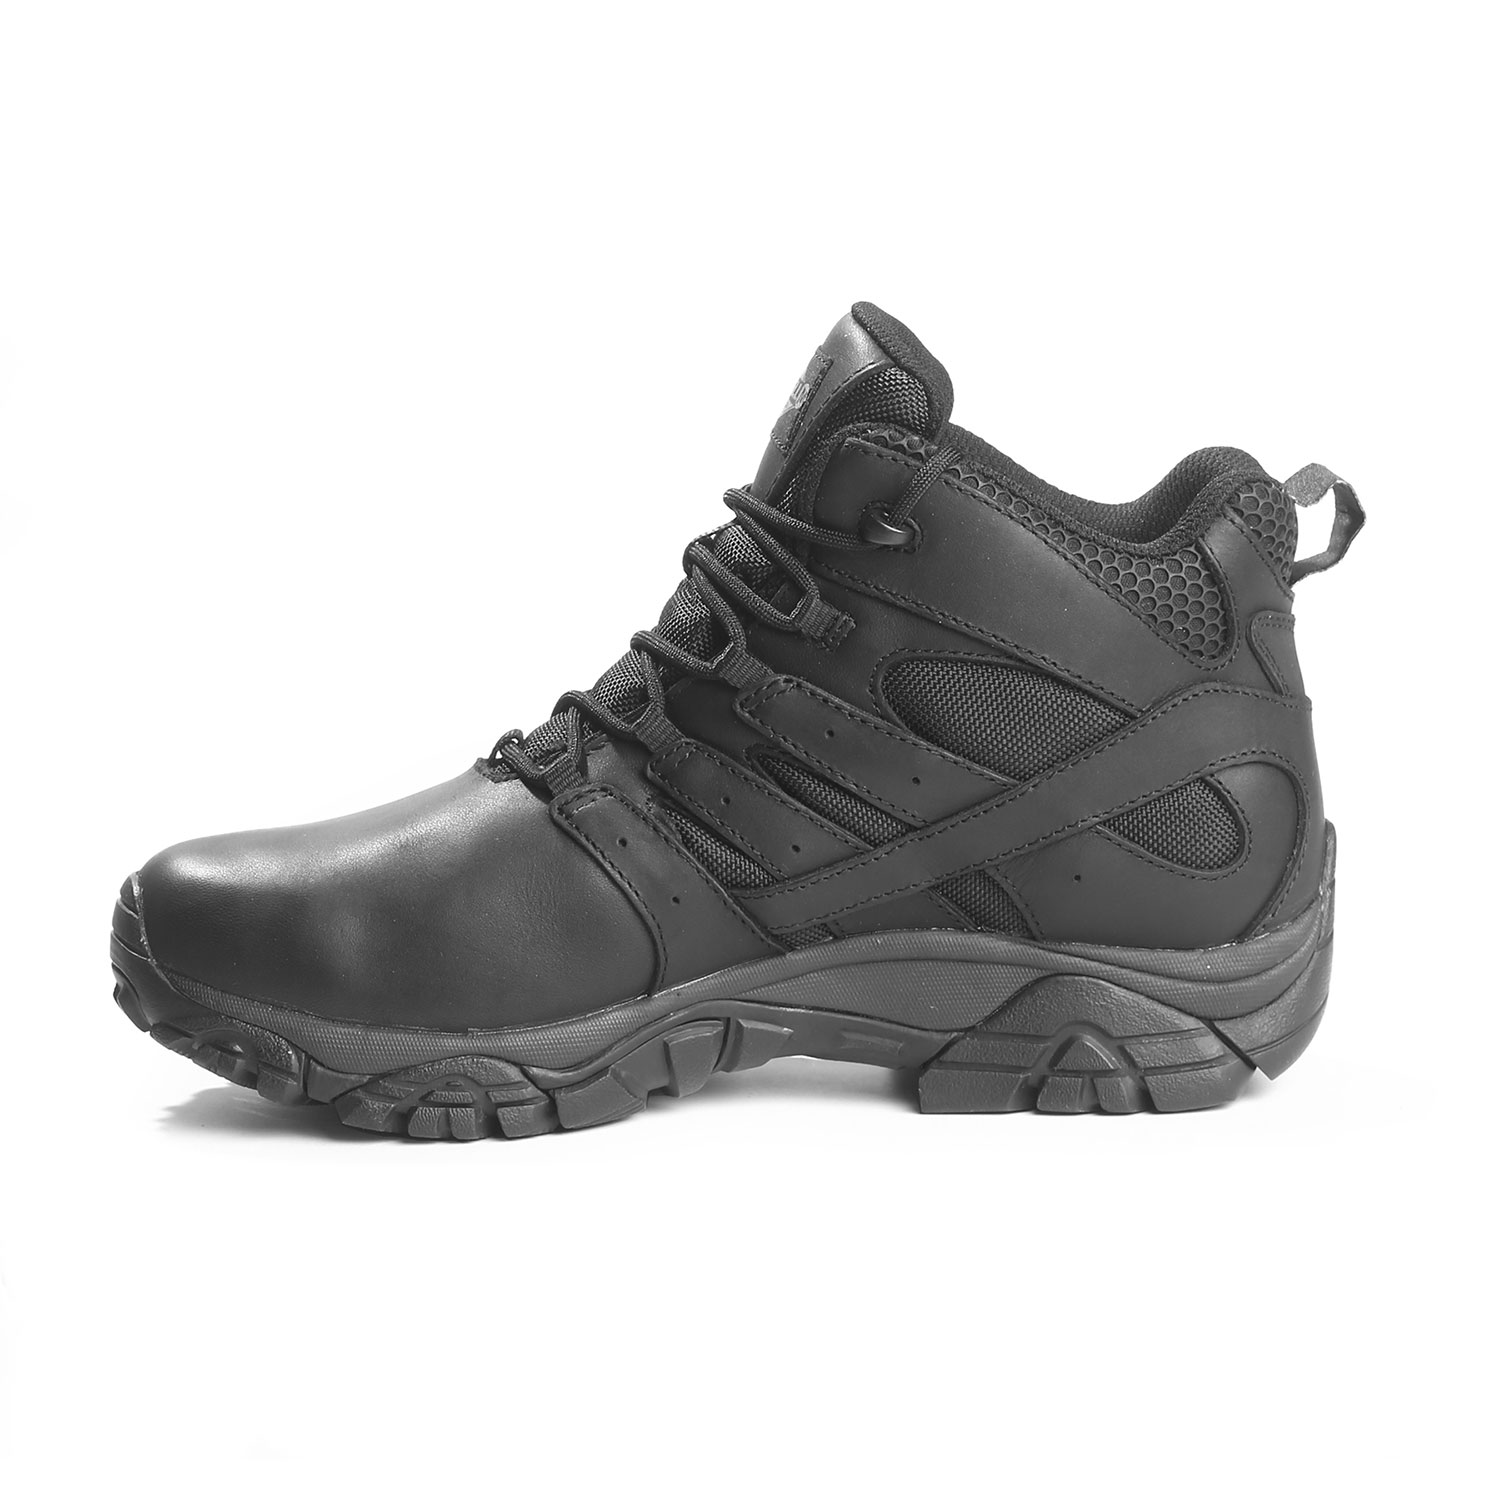 c898ccdc Merrell Moab 2 Mid Tactical Response Waterproof Boots.